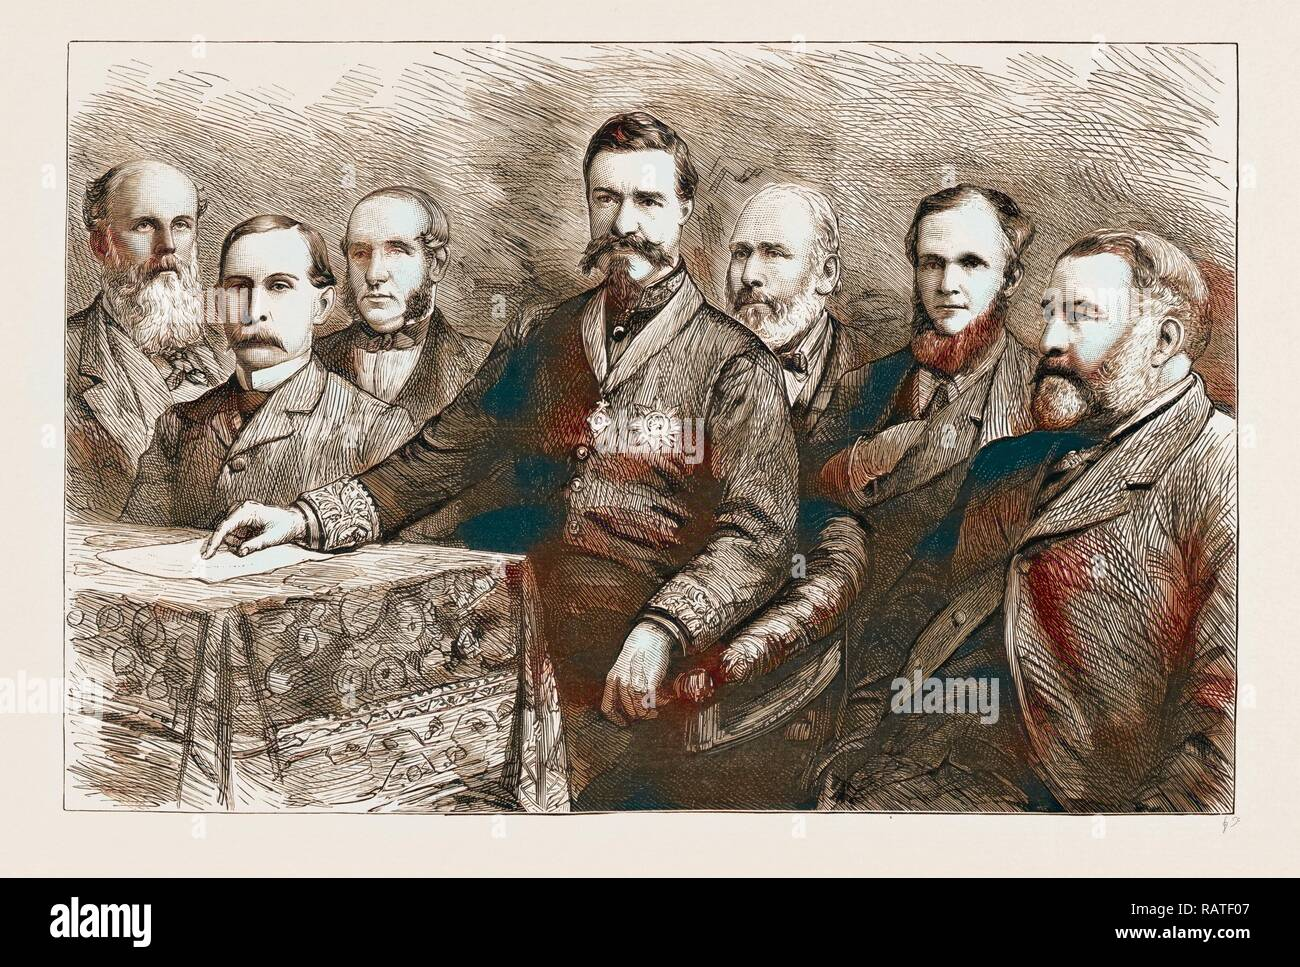 THE SOCIAL SCIENCE CONGRESS AT HUDDERSFIELD: A PORTRAIT GROUP, UK, 1883, MR. C.E. HOWARD VINCENT, DIRECTOR OF reimagined - Stock Image